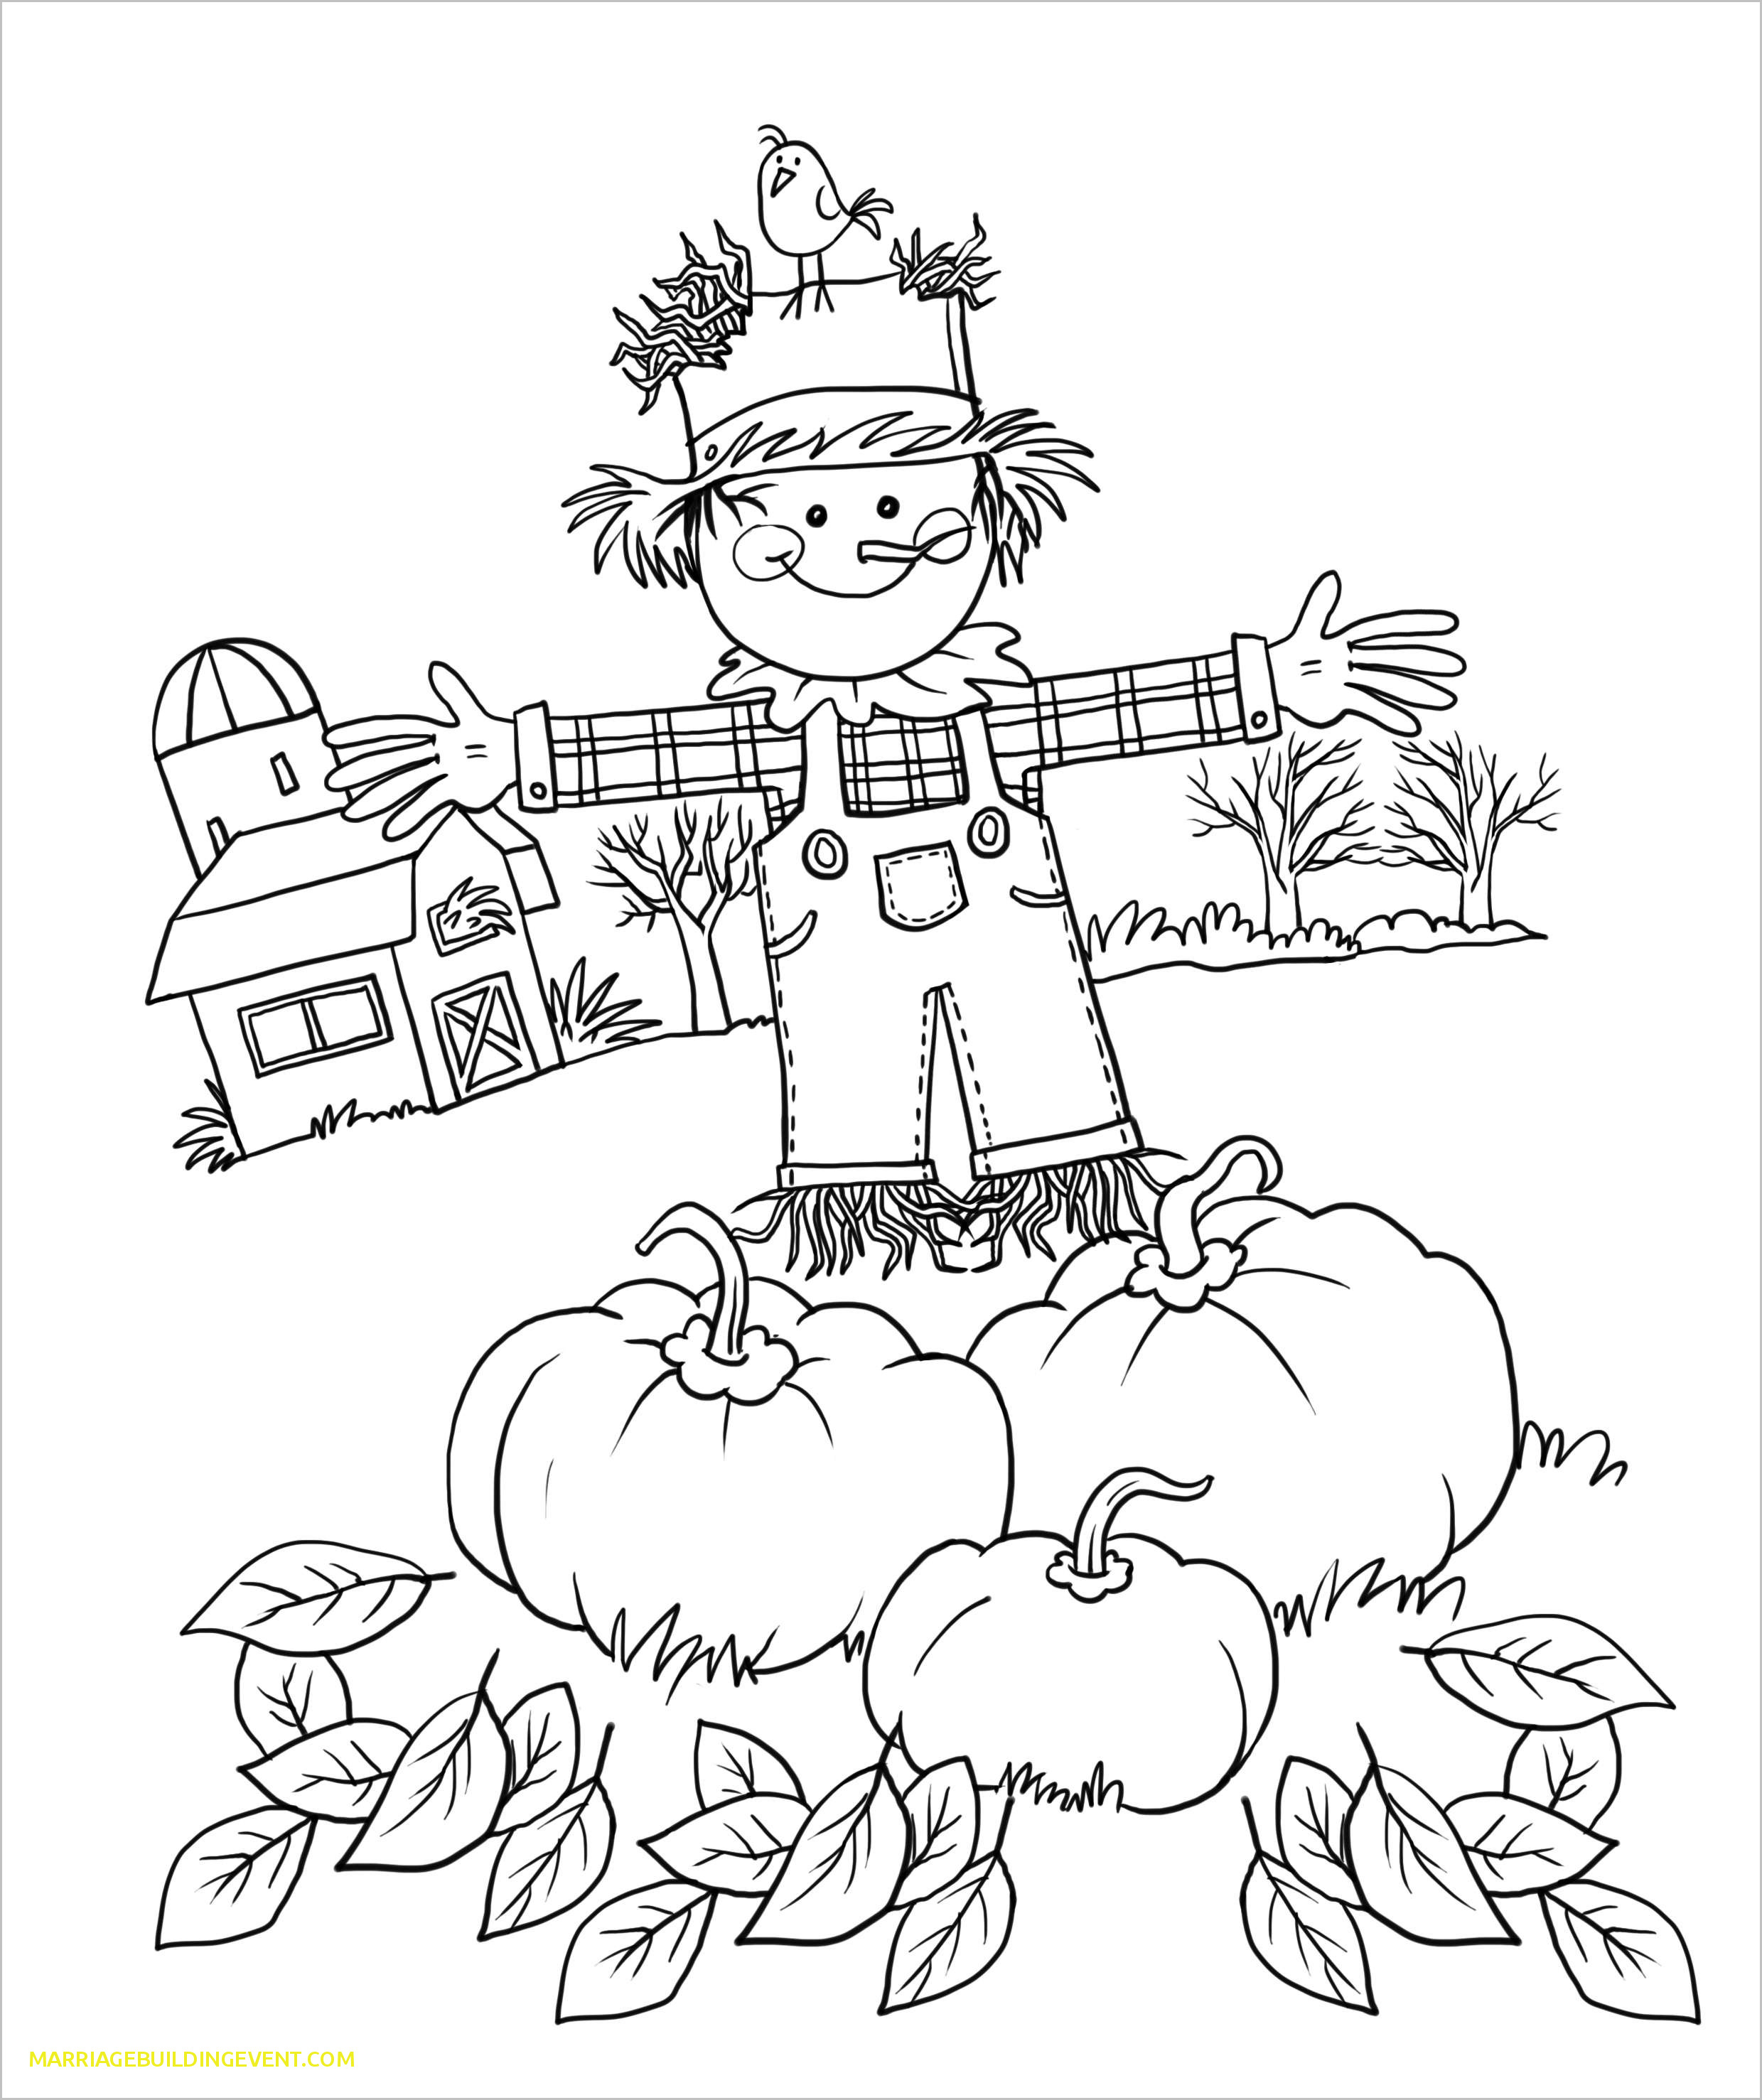 Christmas Elf Coloring Pages Coloring Book Free Buddy The Elf Coloring Pages Printable